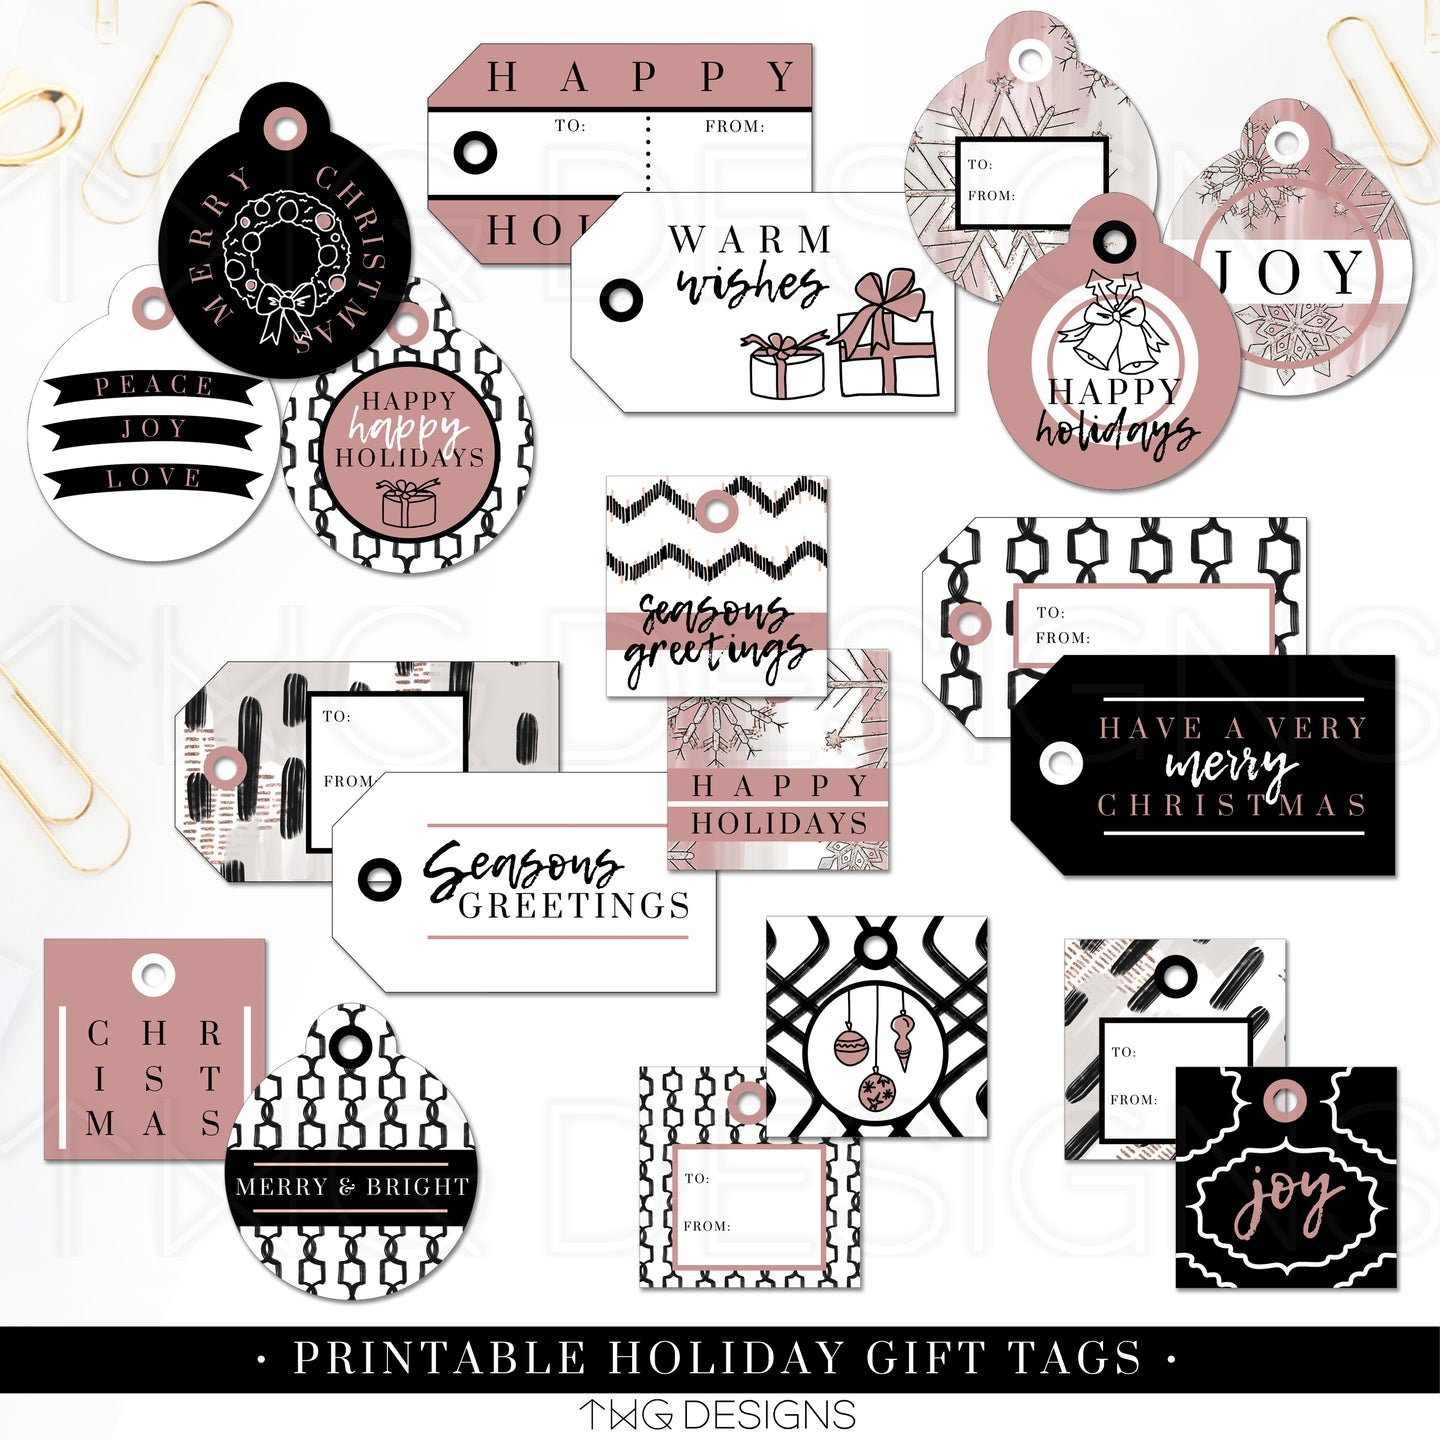 Printables, Bold Blush Holiday Gift Tags - TWG Designs